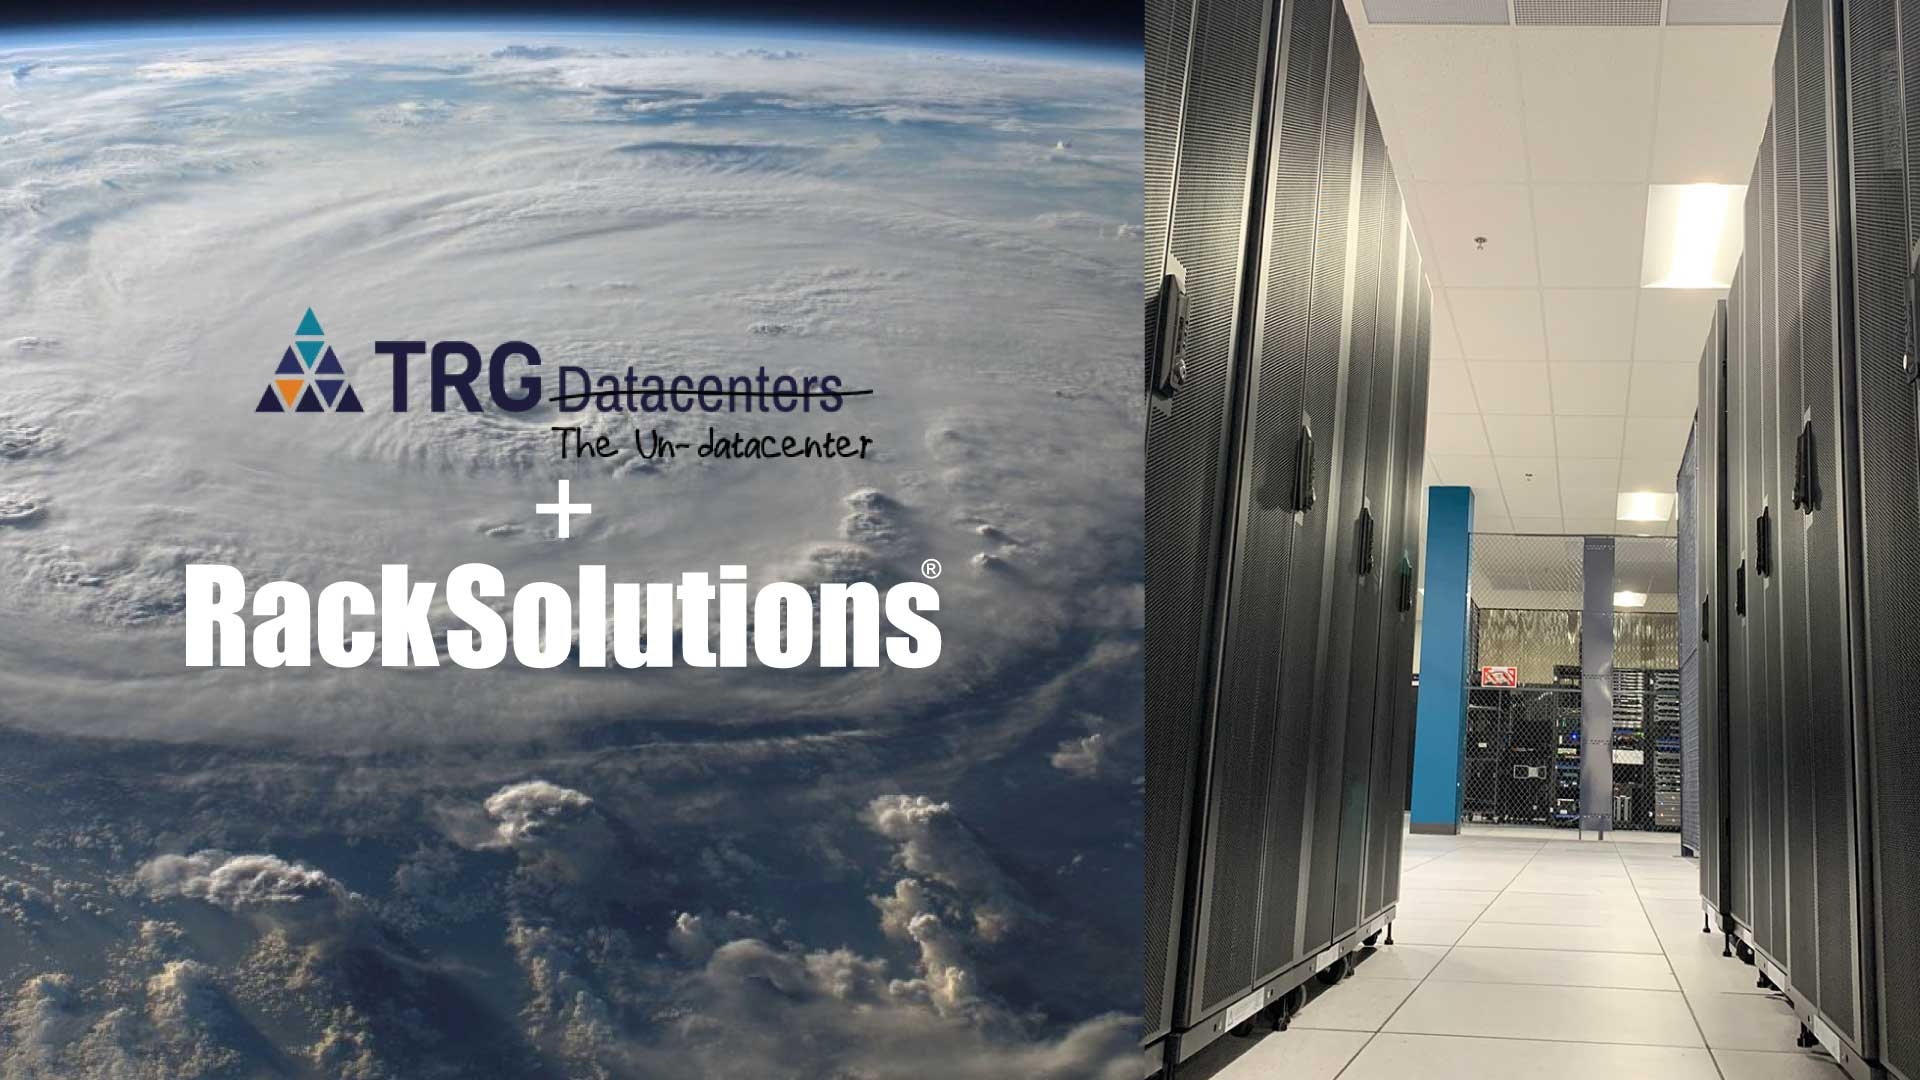 TRG and RackSolutions